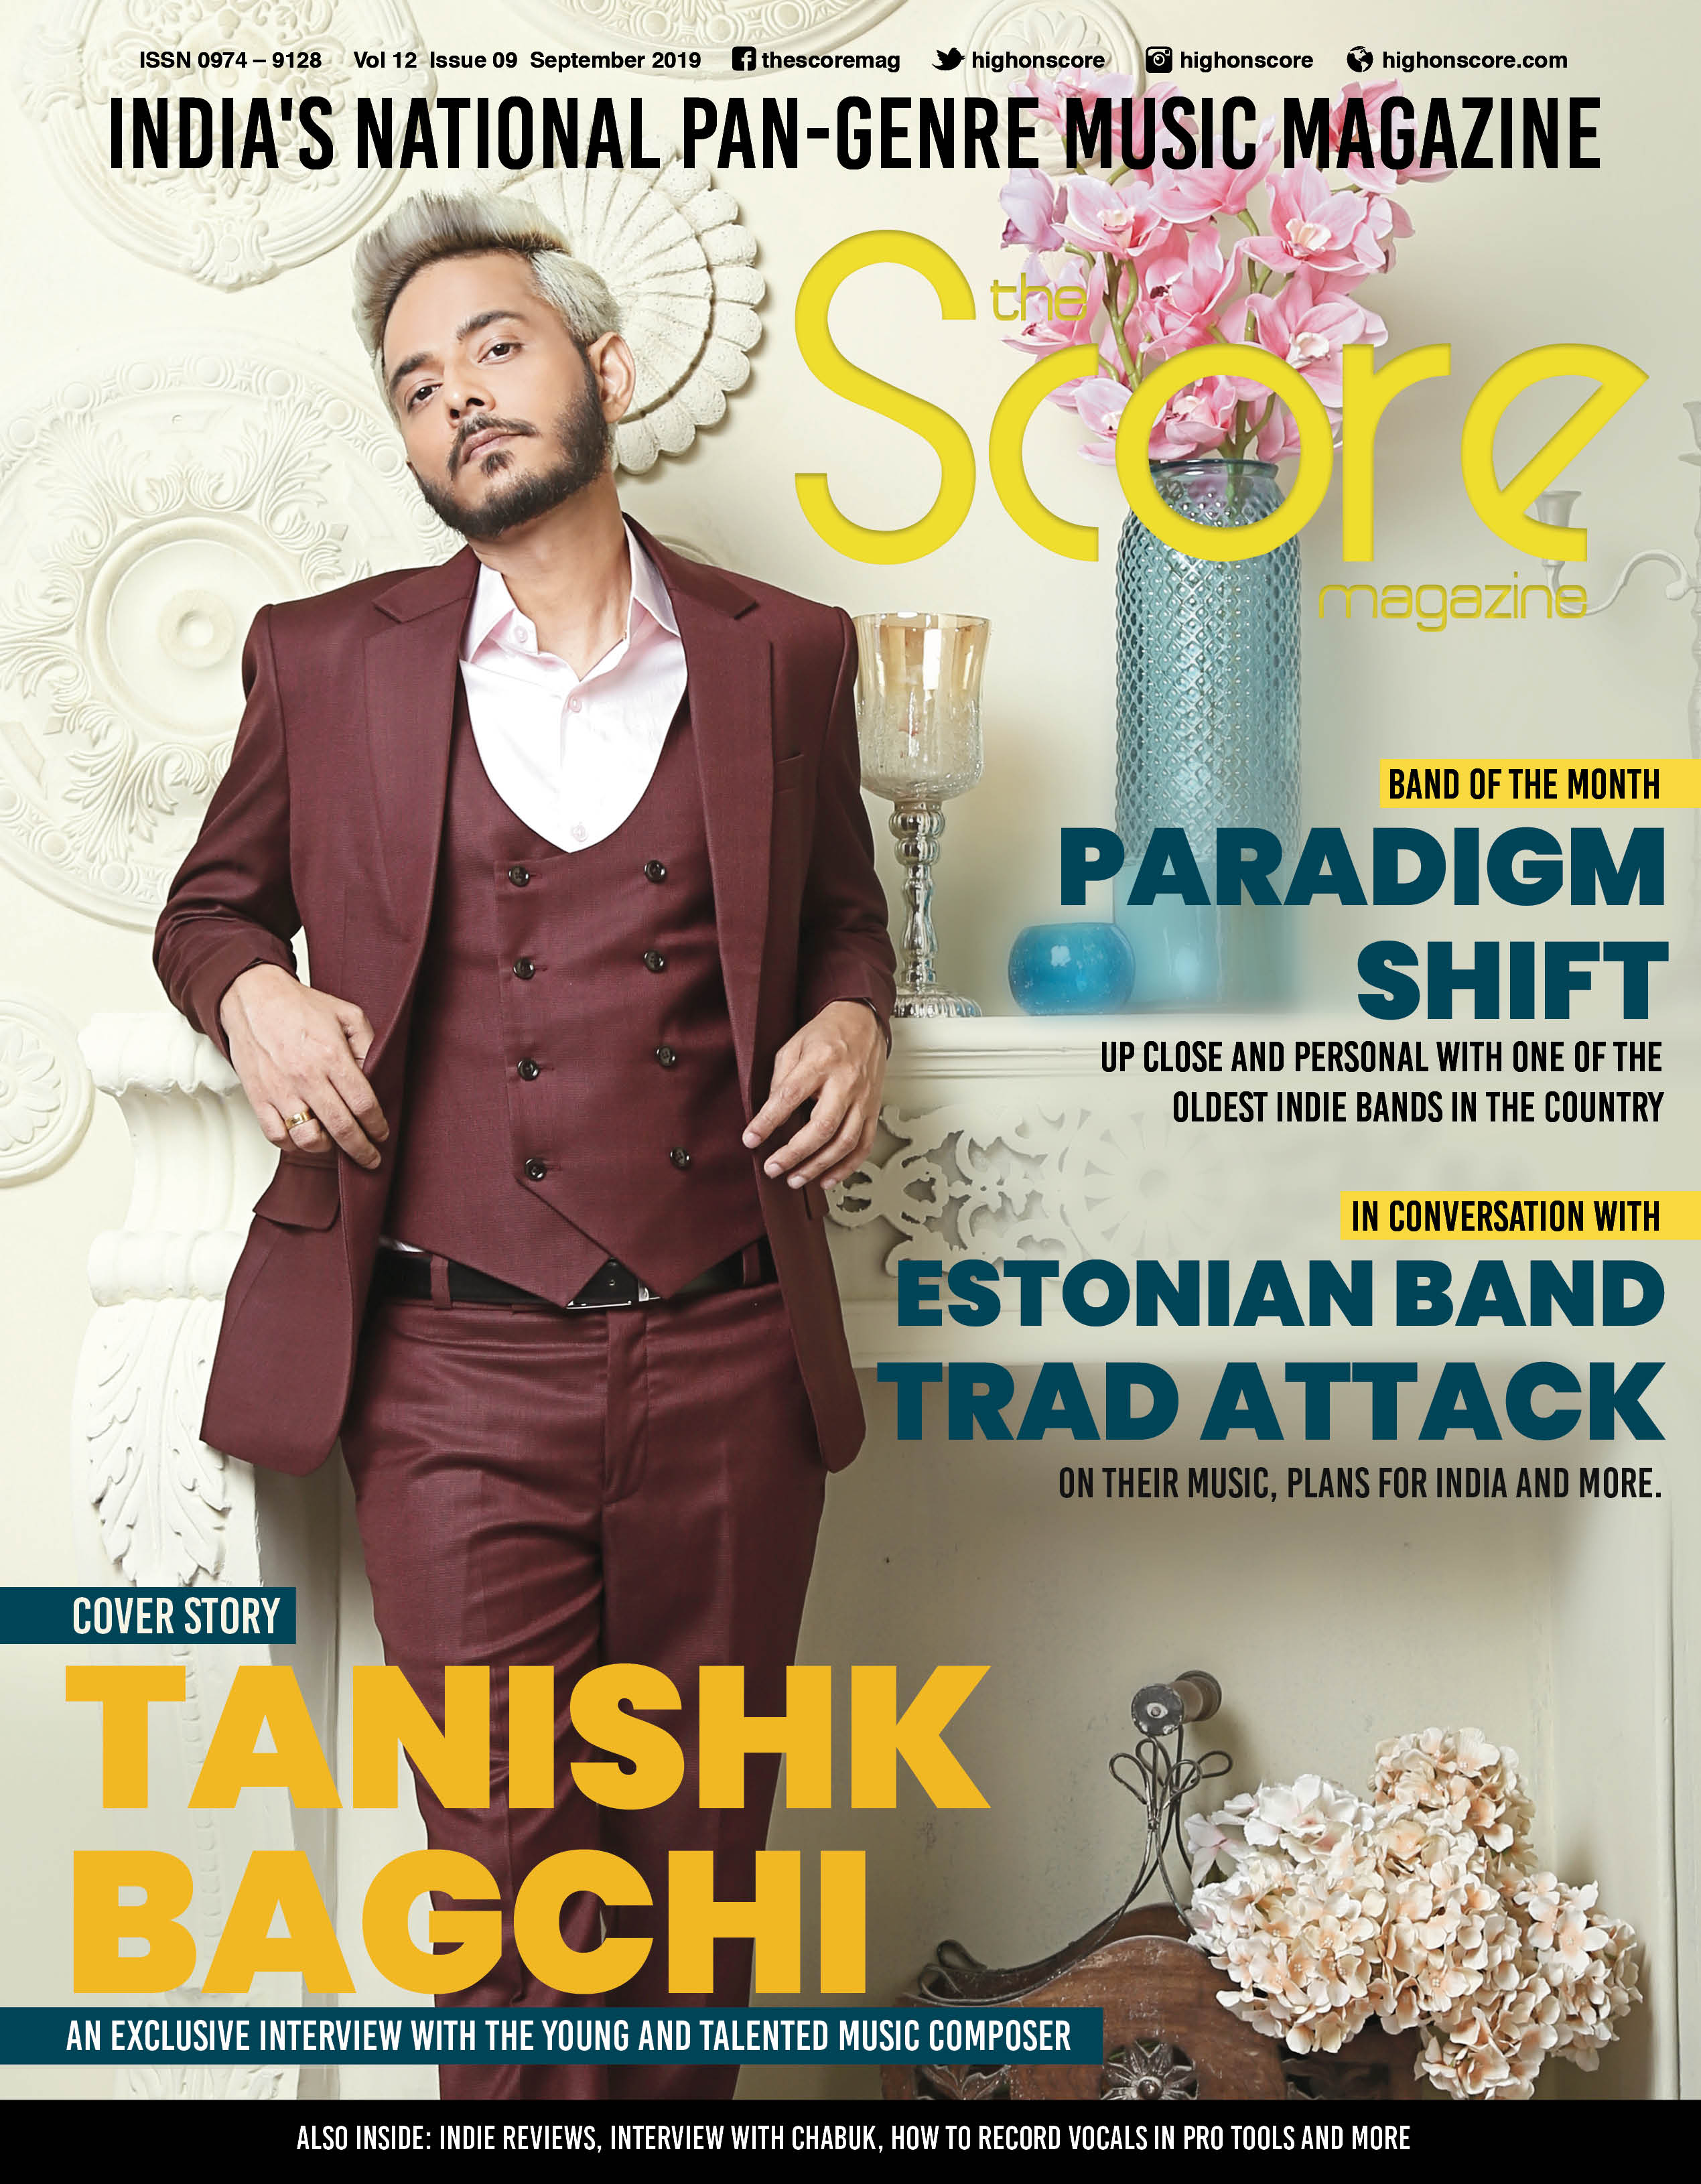 September 2019 issue featuring Tanishk Bagchi